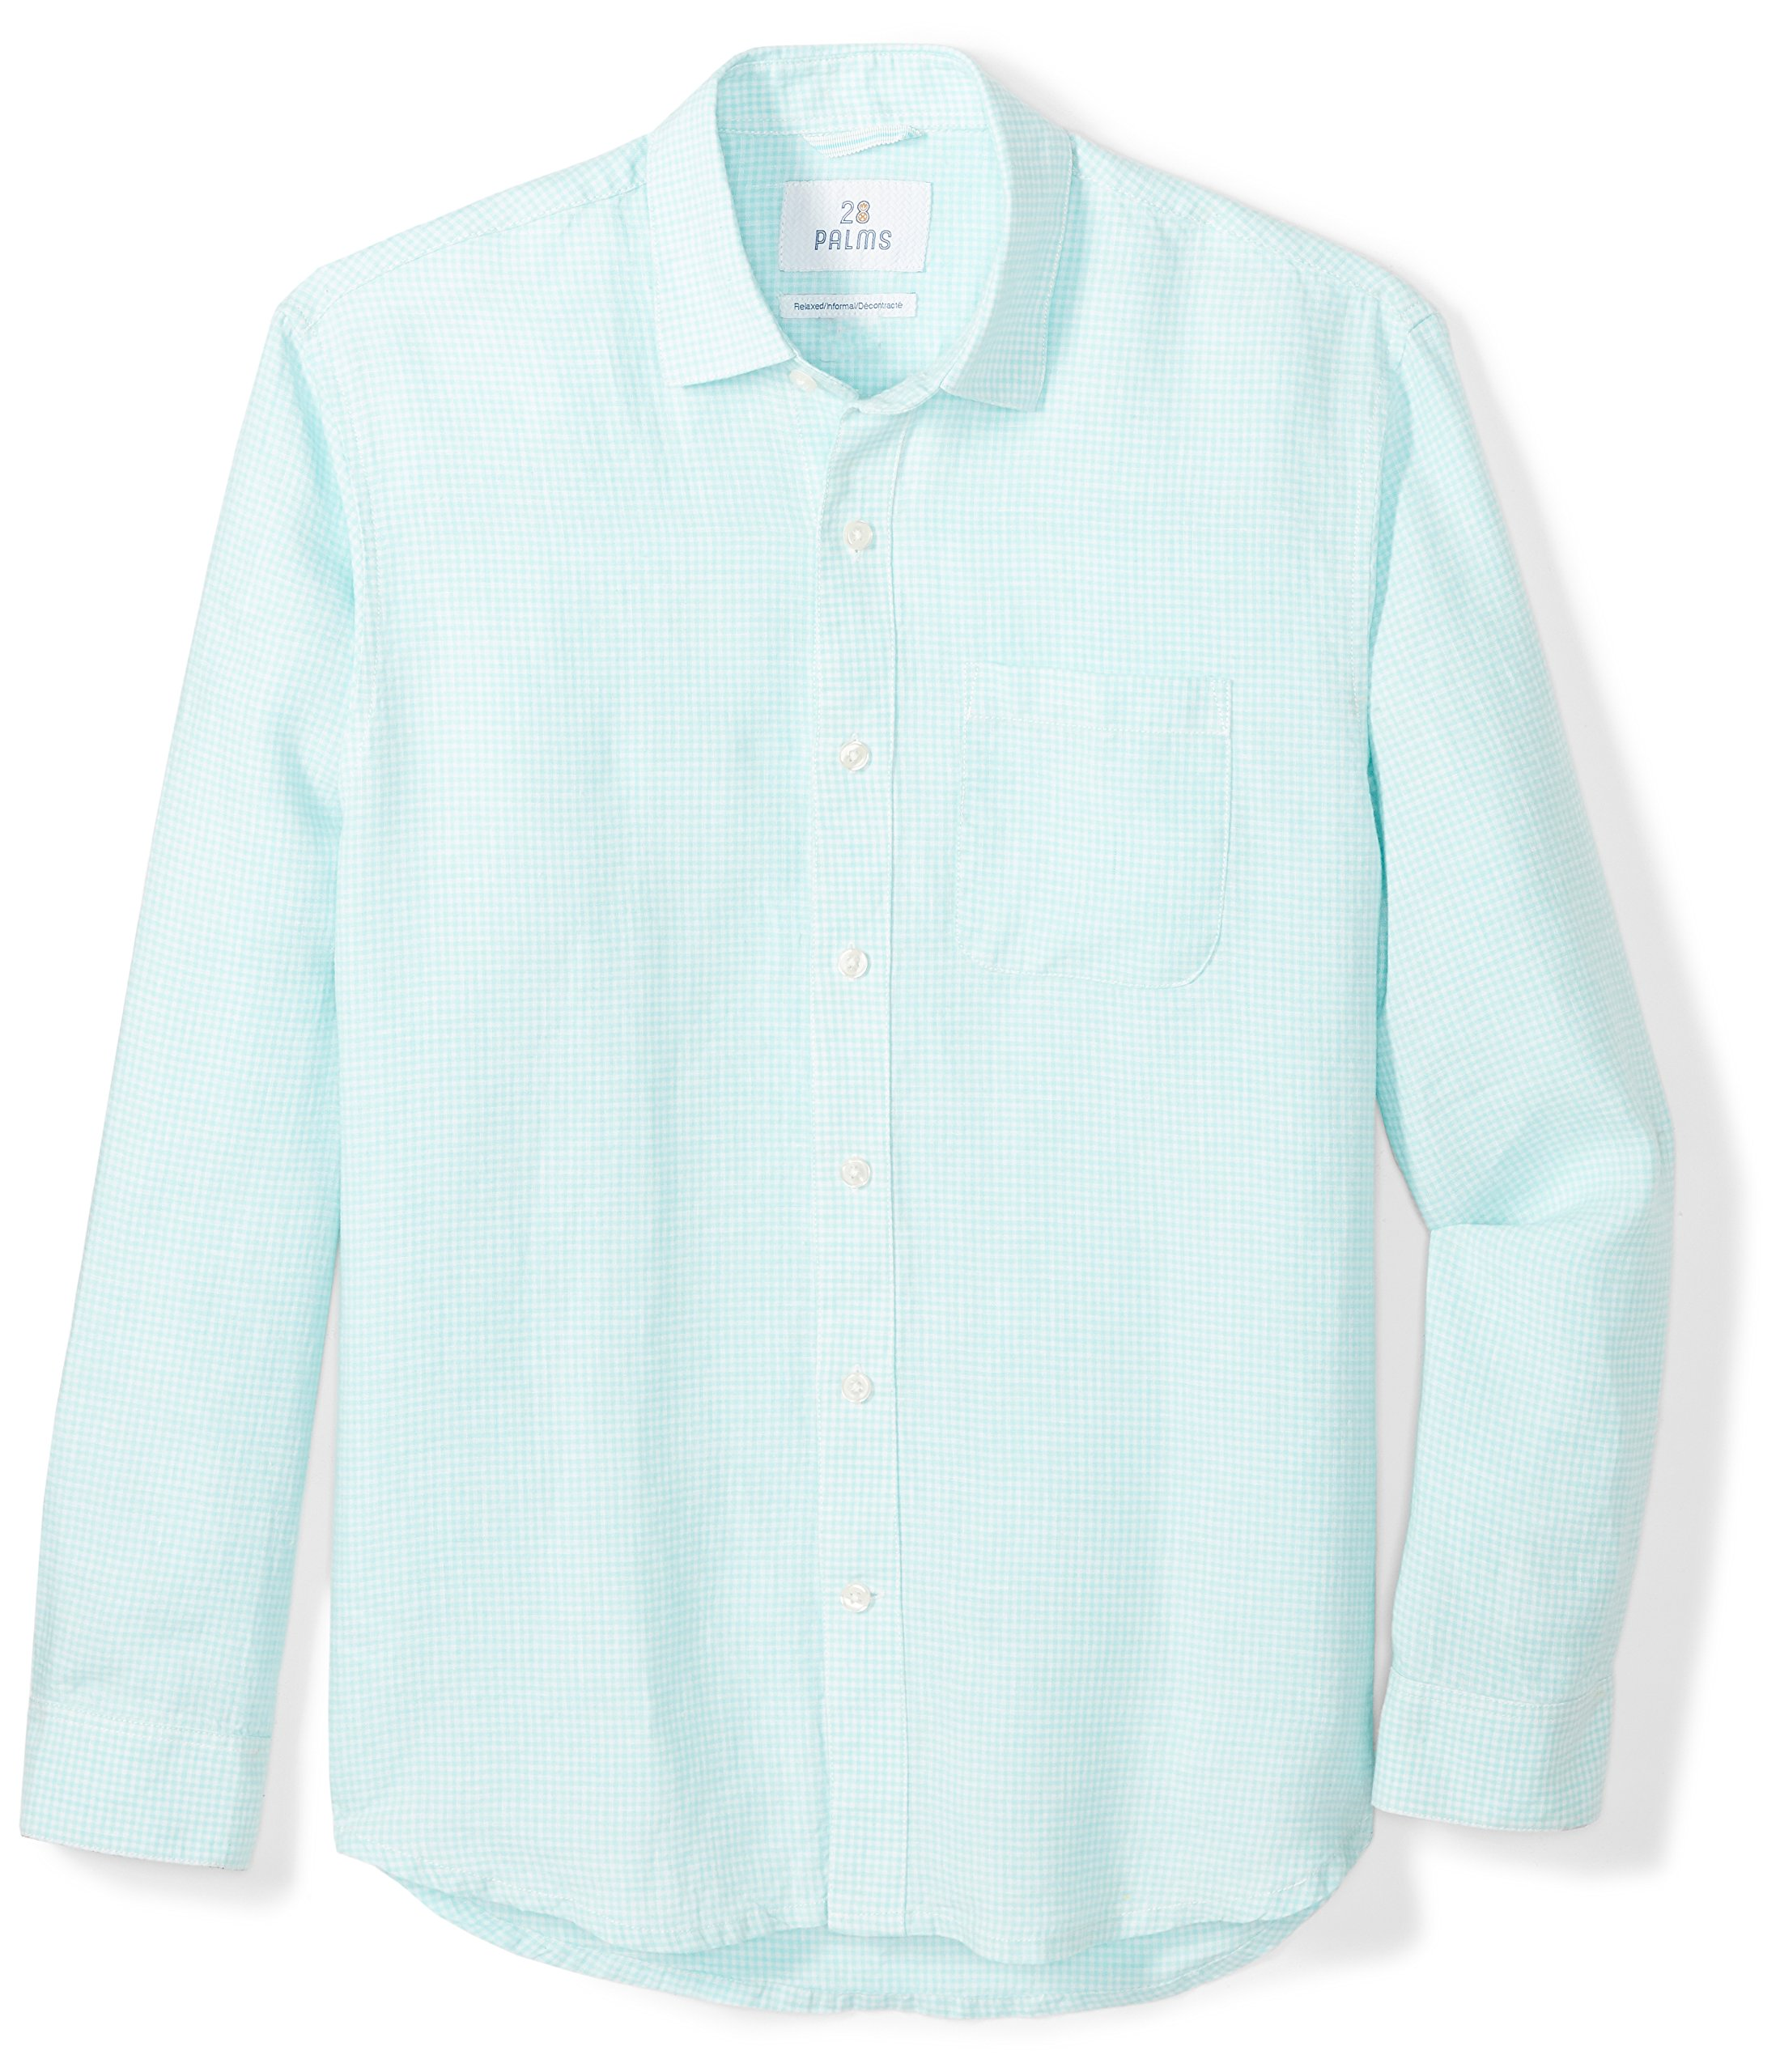 28 Palms Men's Relaxed-Fit Long-Sleeve 100% Linen Check Shirt, Aqua, Large